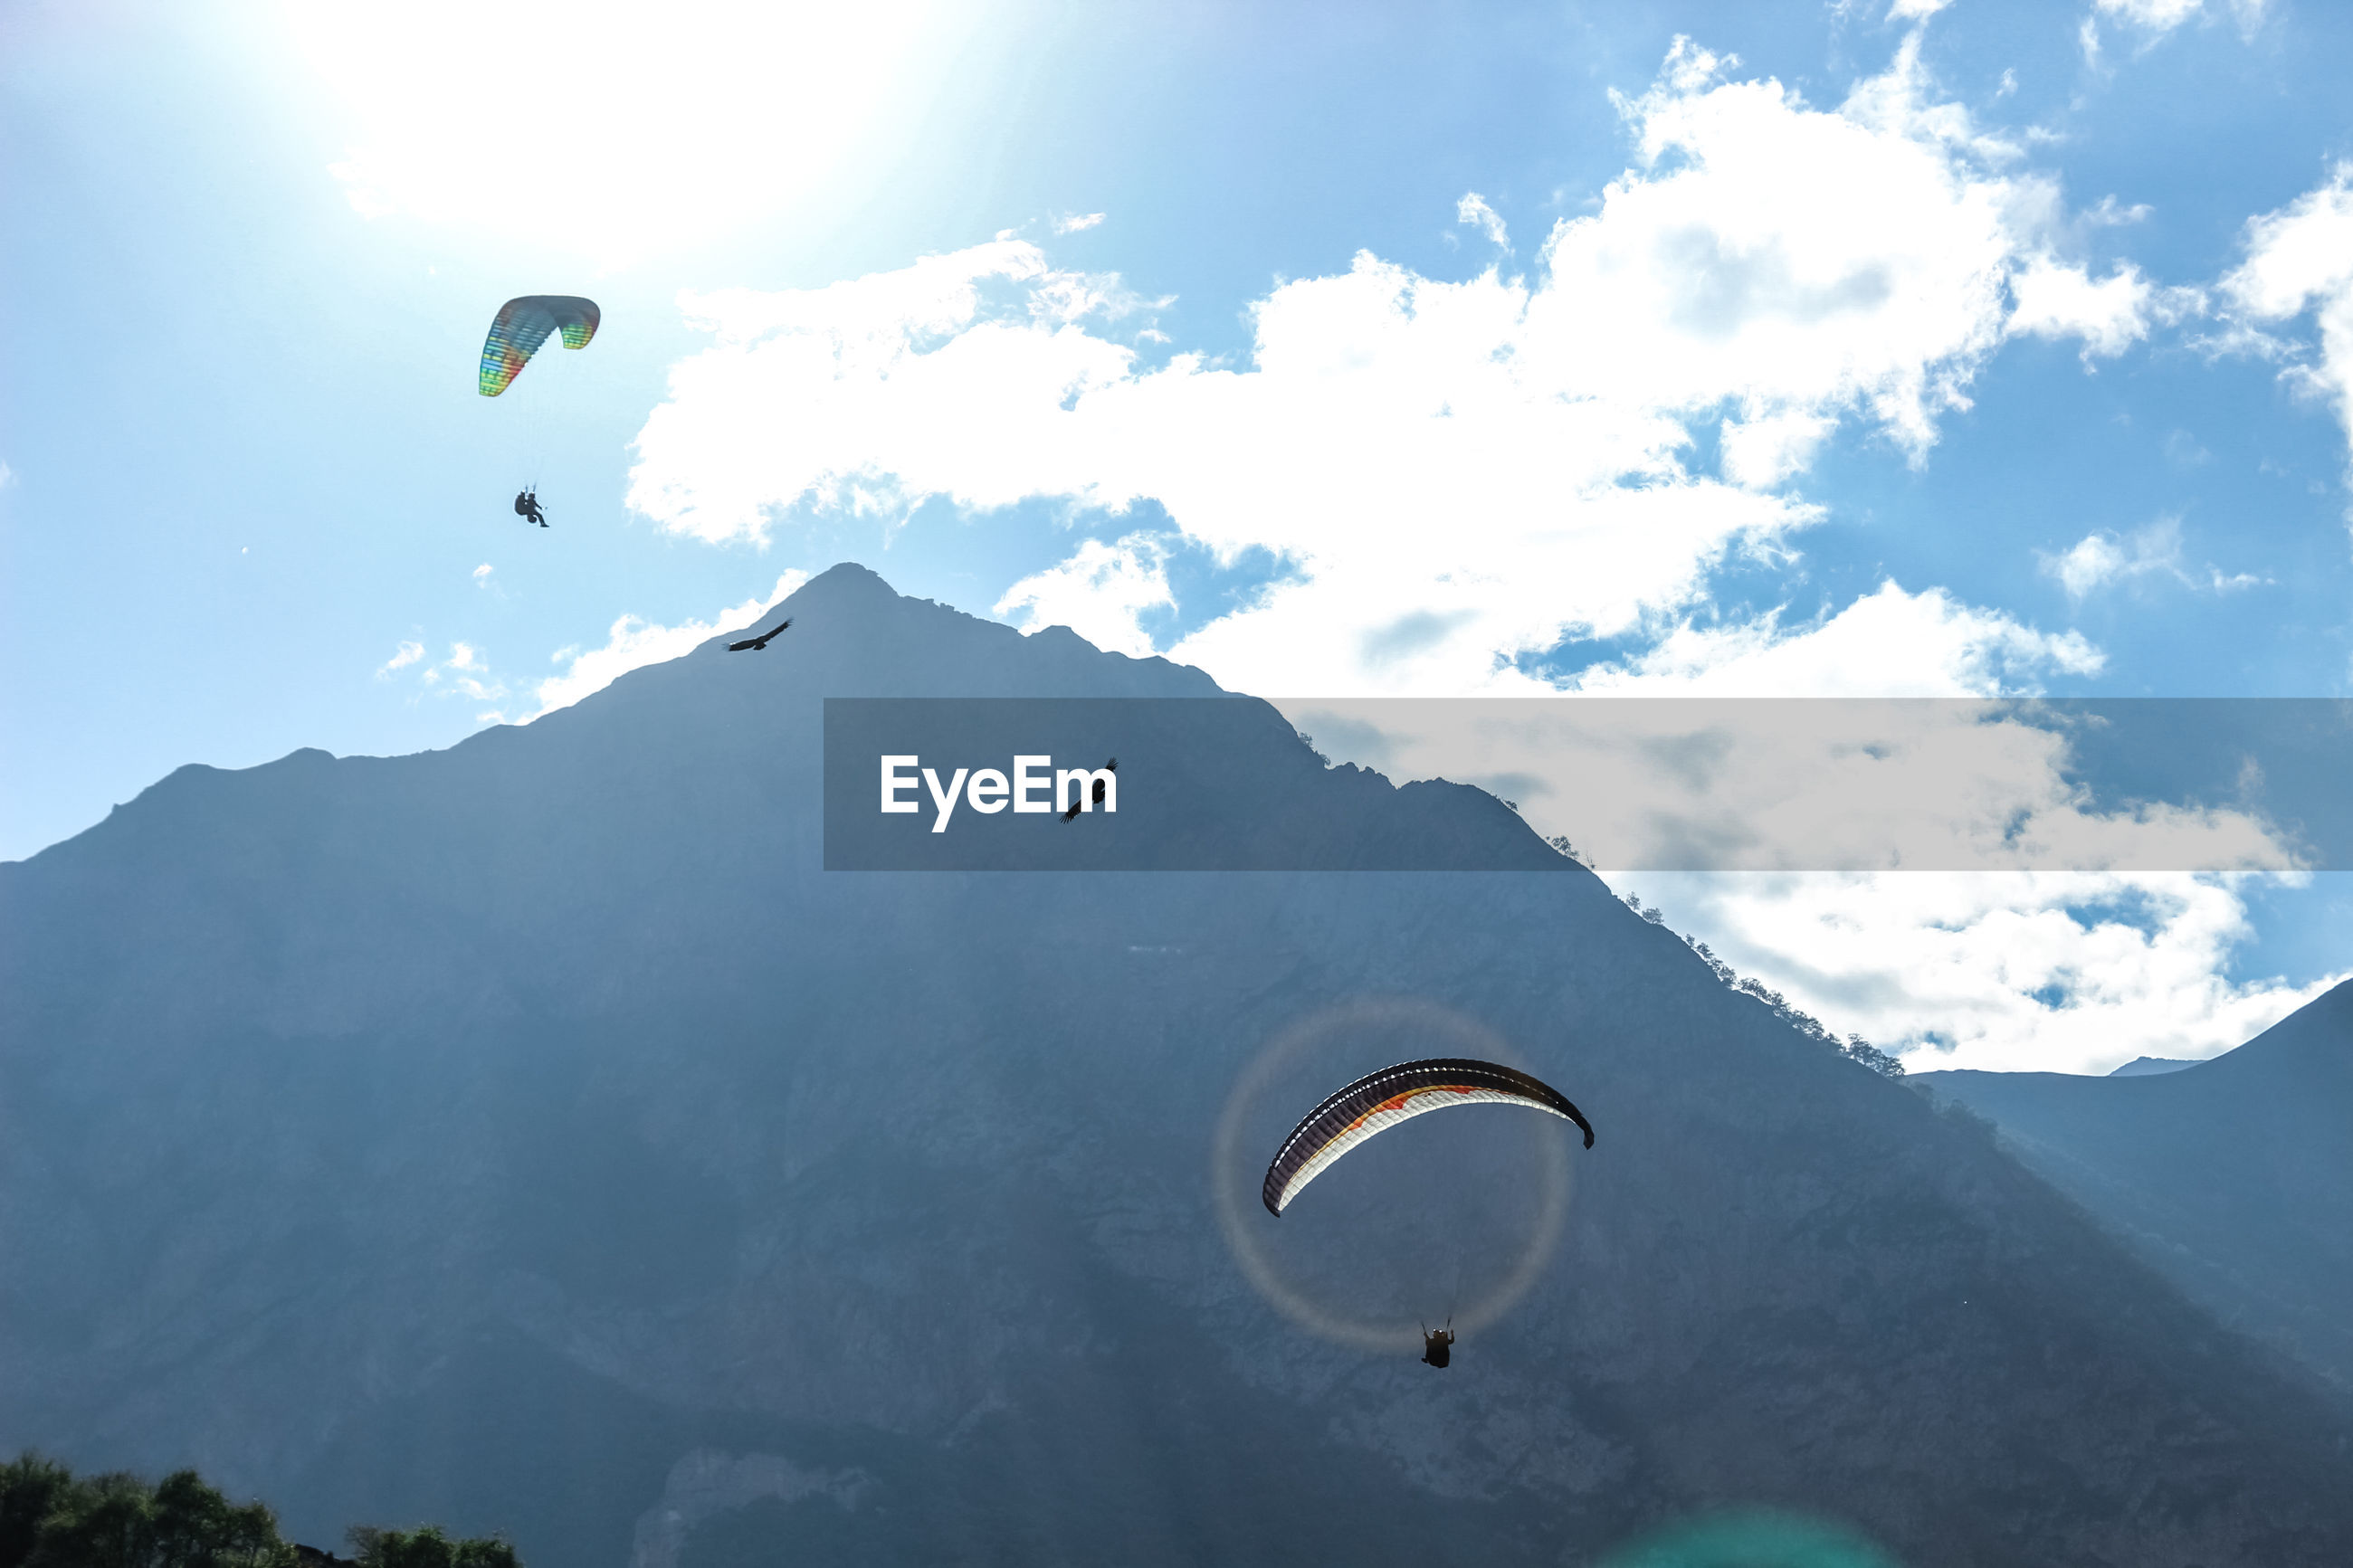 Person paragliding over mountain against sky